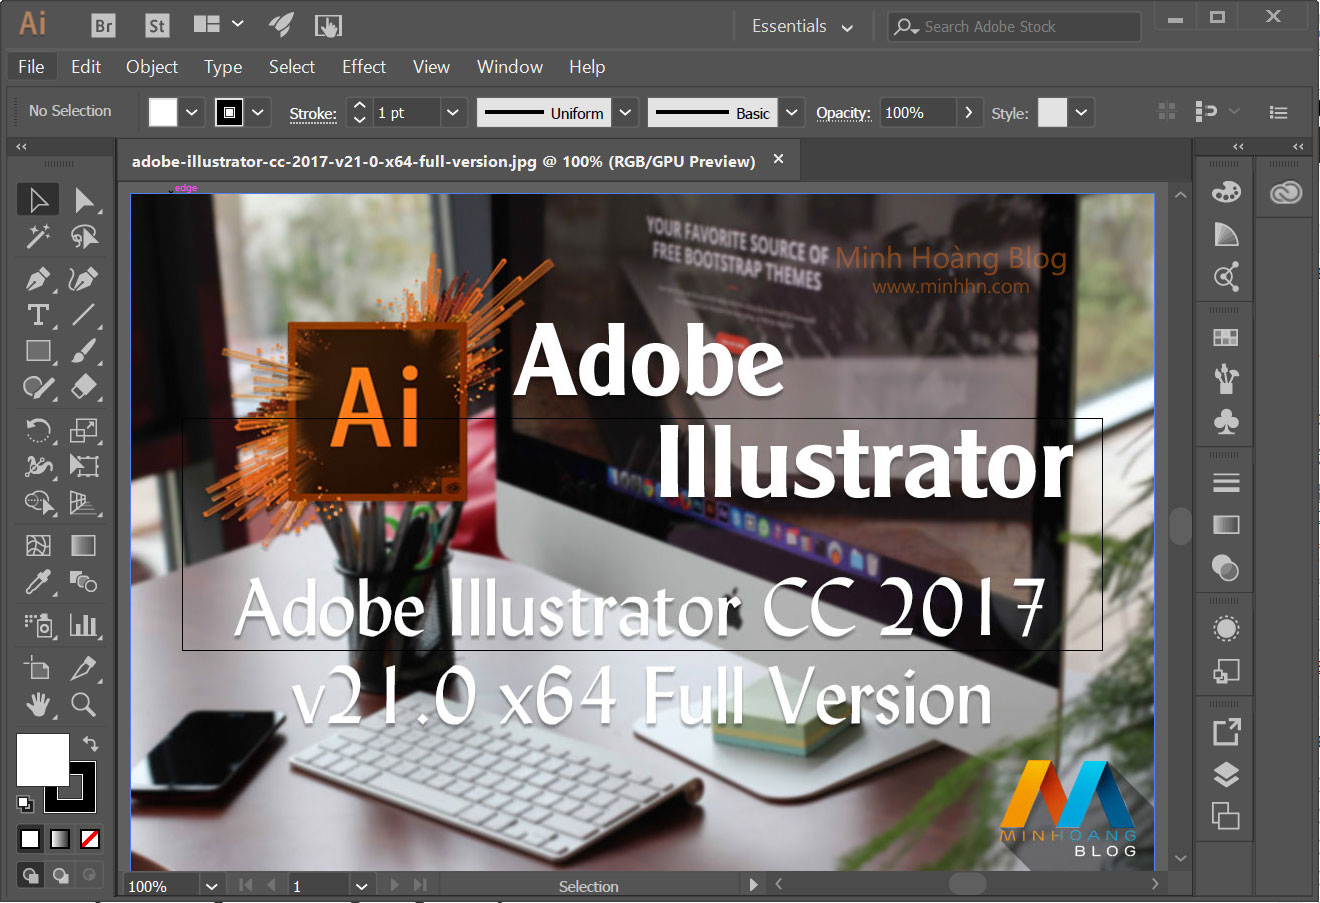 Adobe Illustrator CC 2017 v21.0